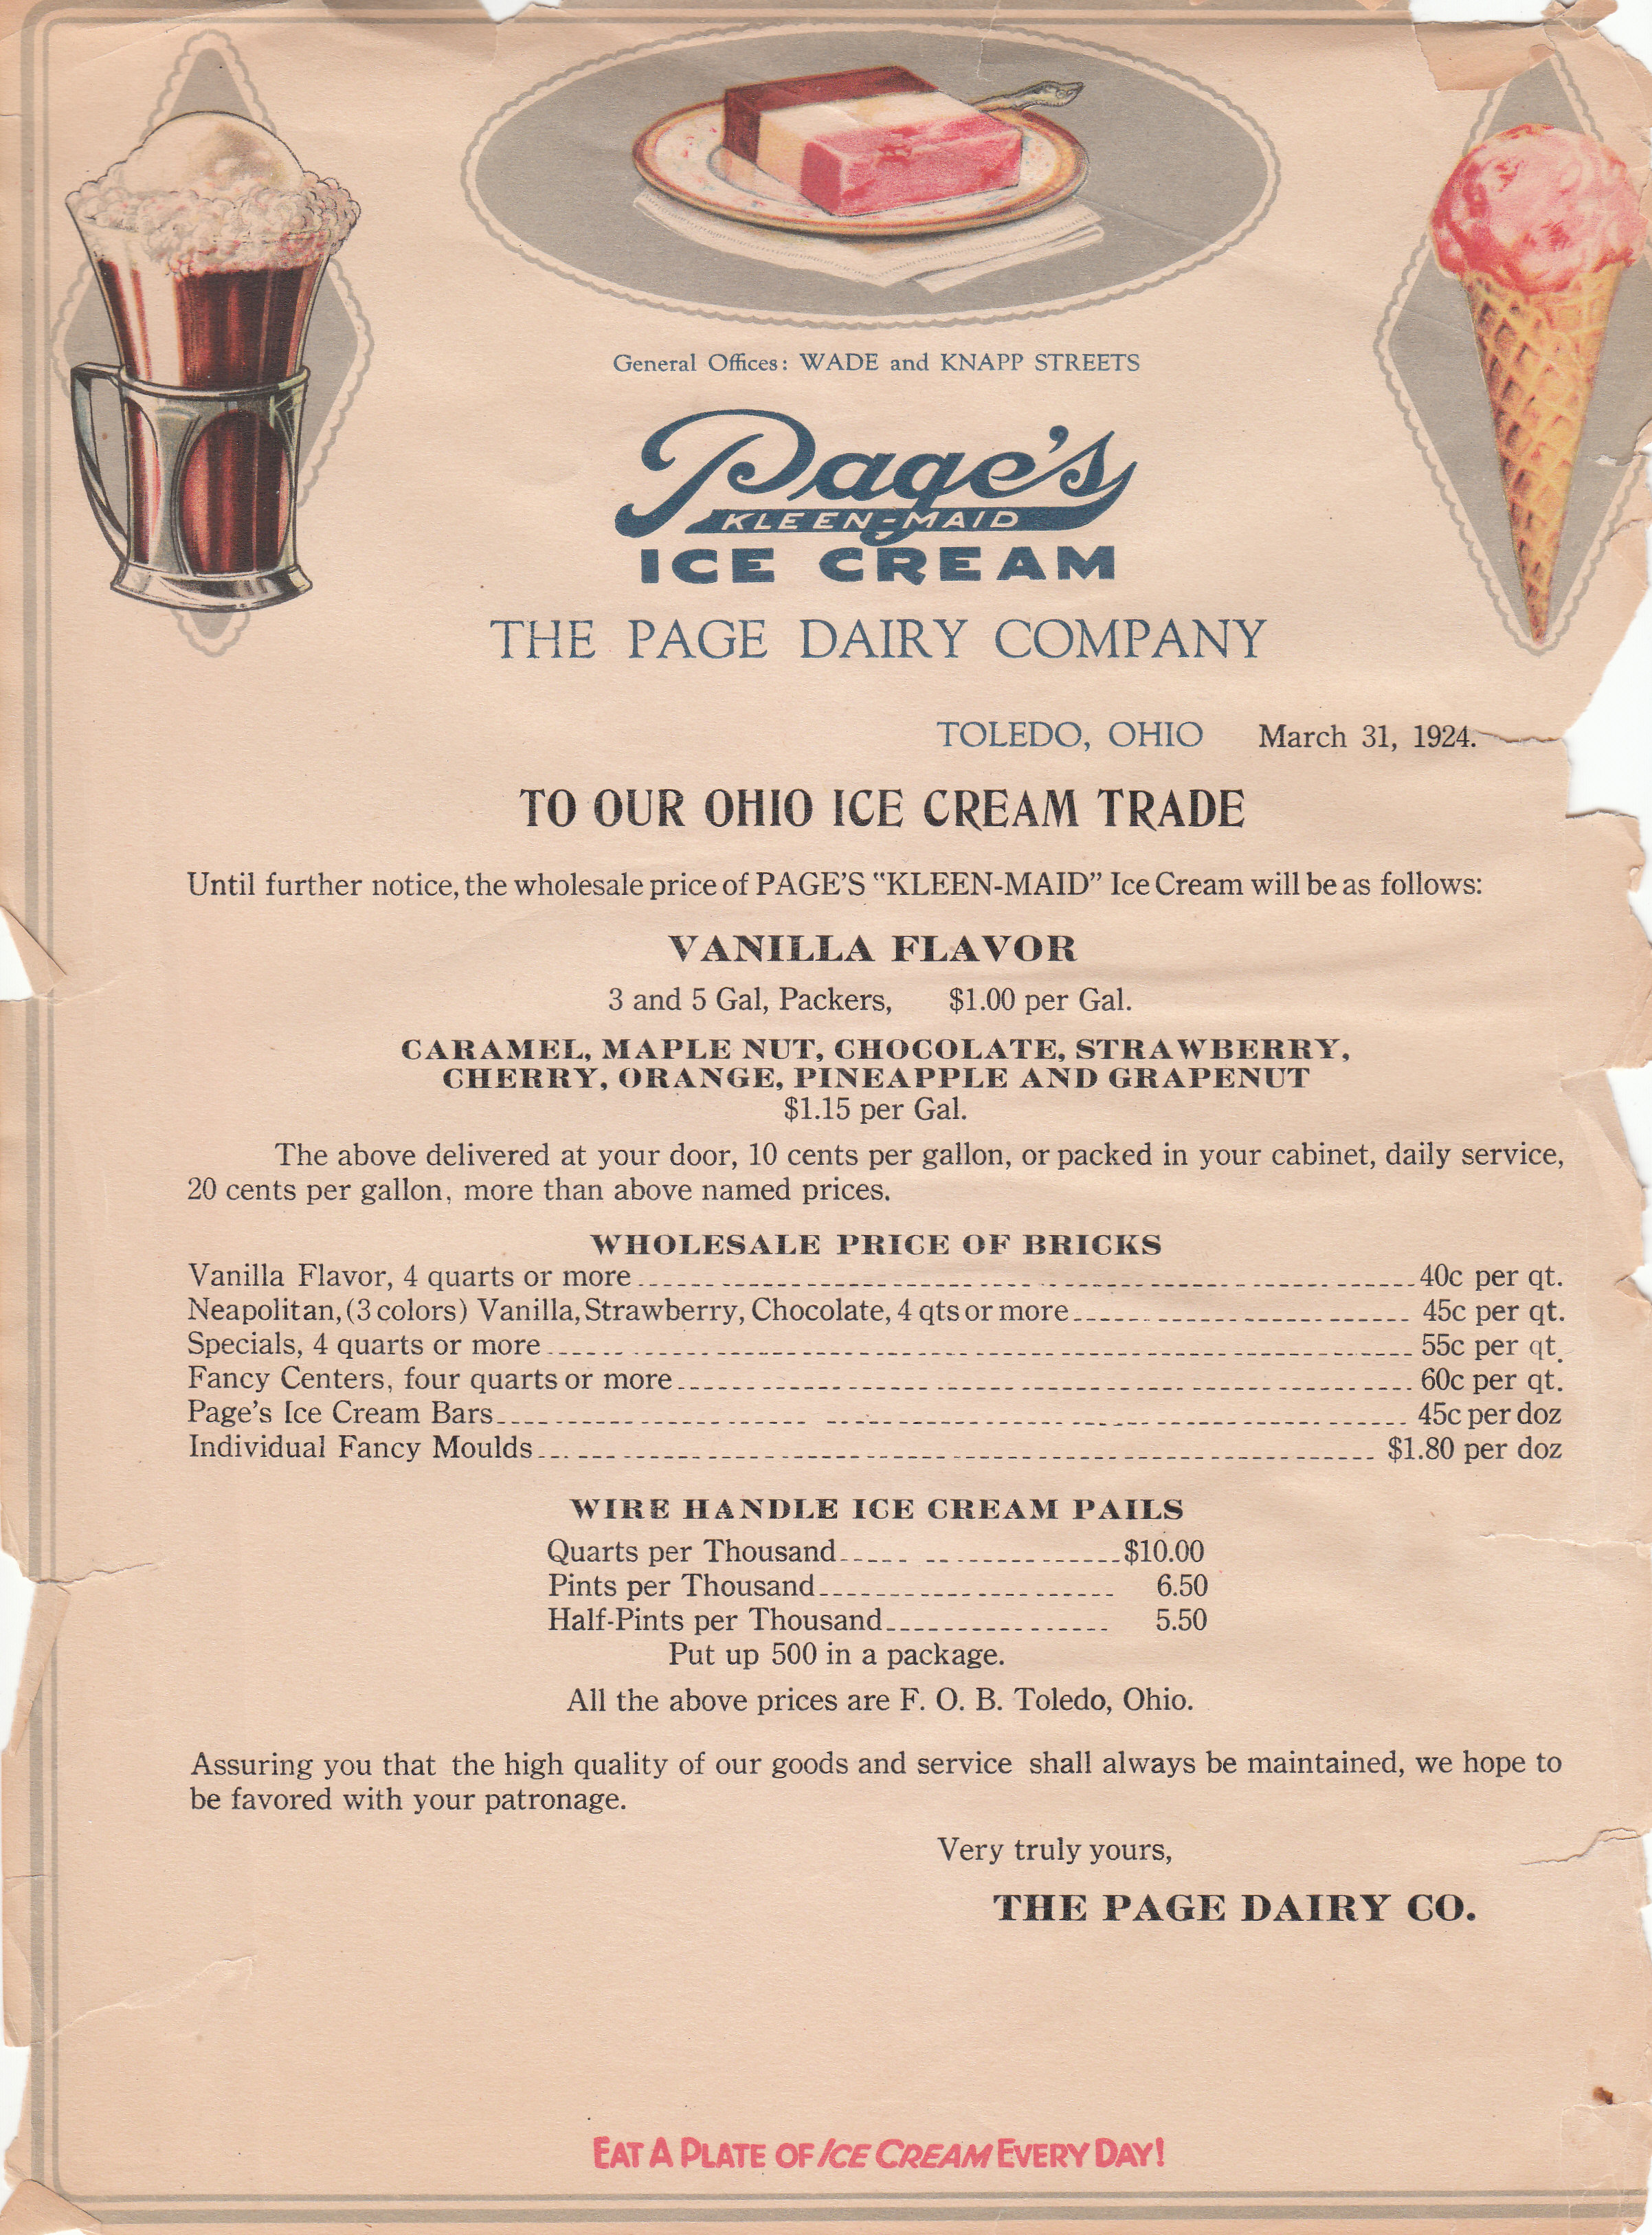 Page Dairy Ice Cream Price List 1924